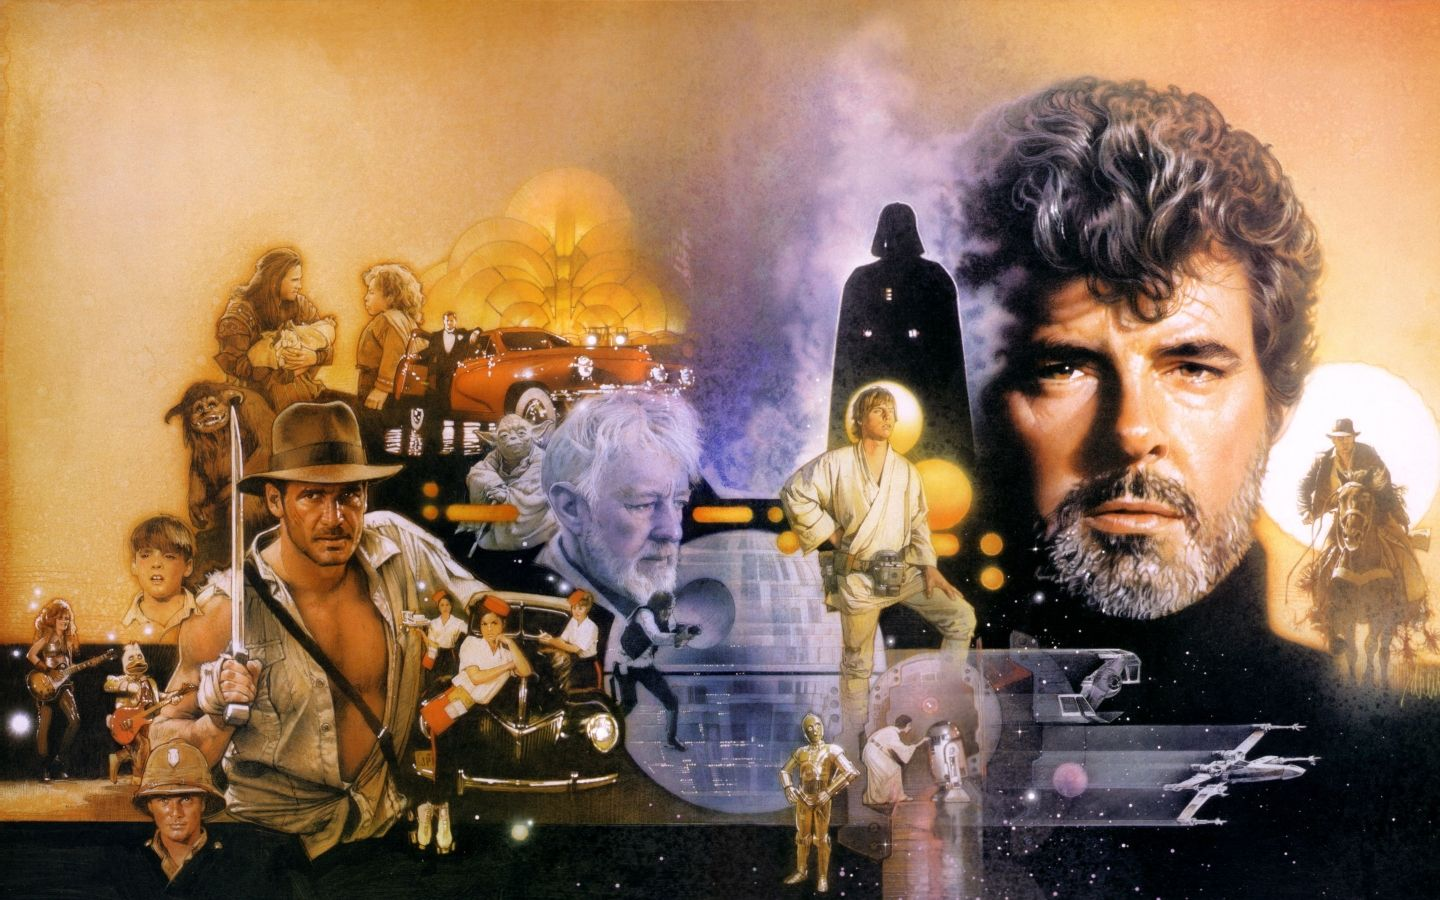 183 1832555 indiana jones wallpapers high resolution george lucas star